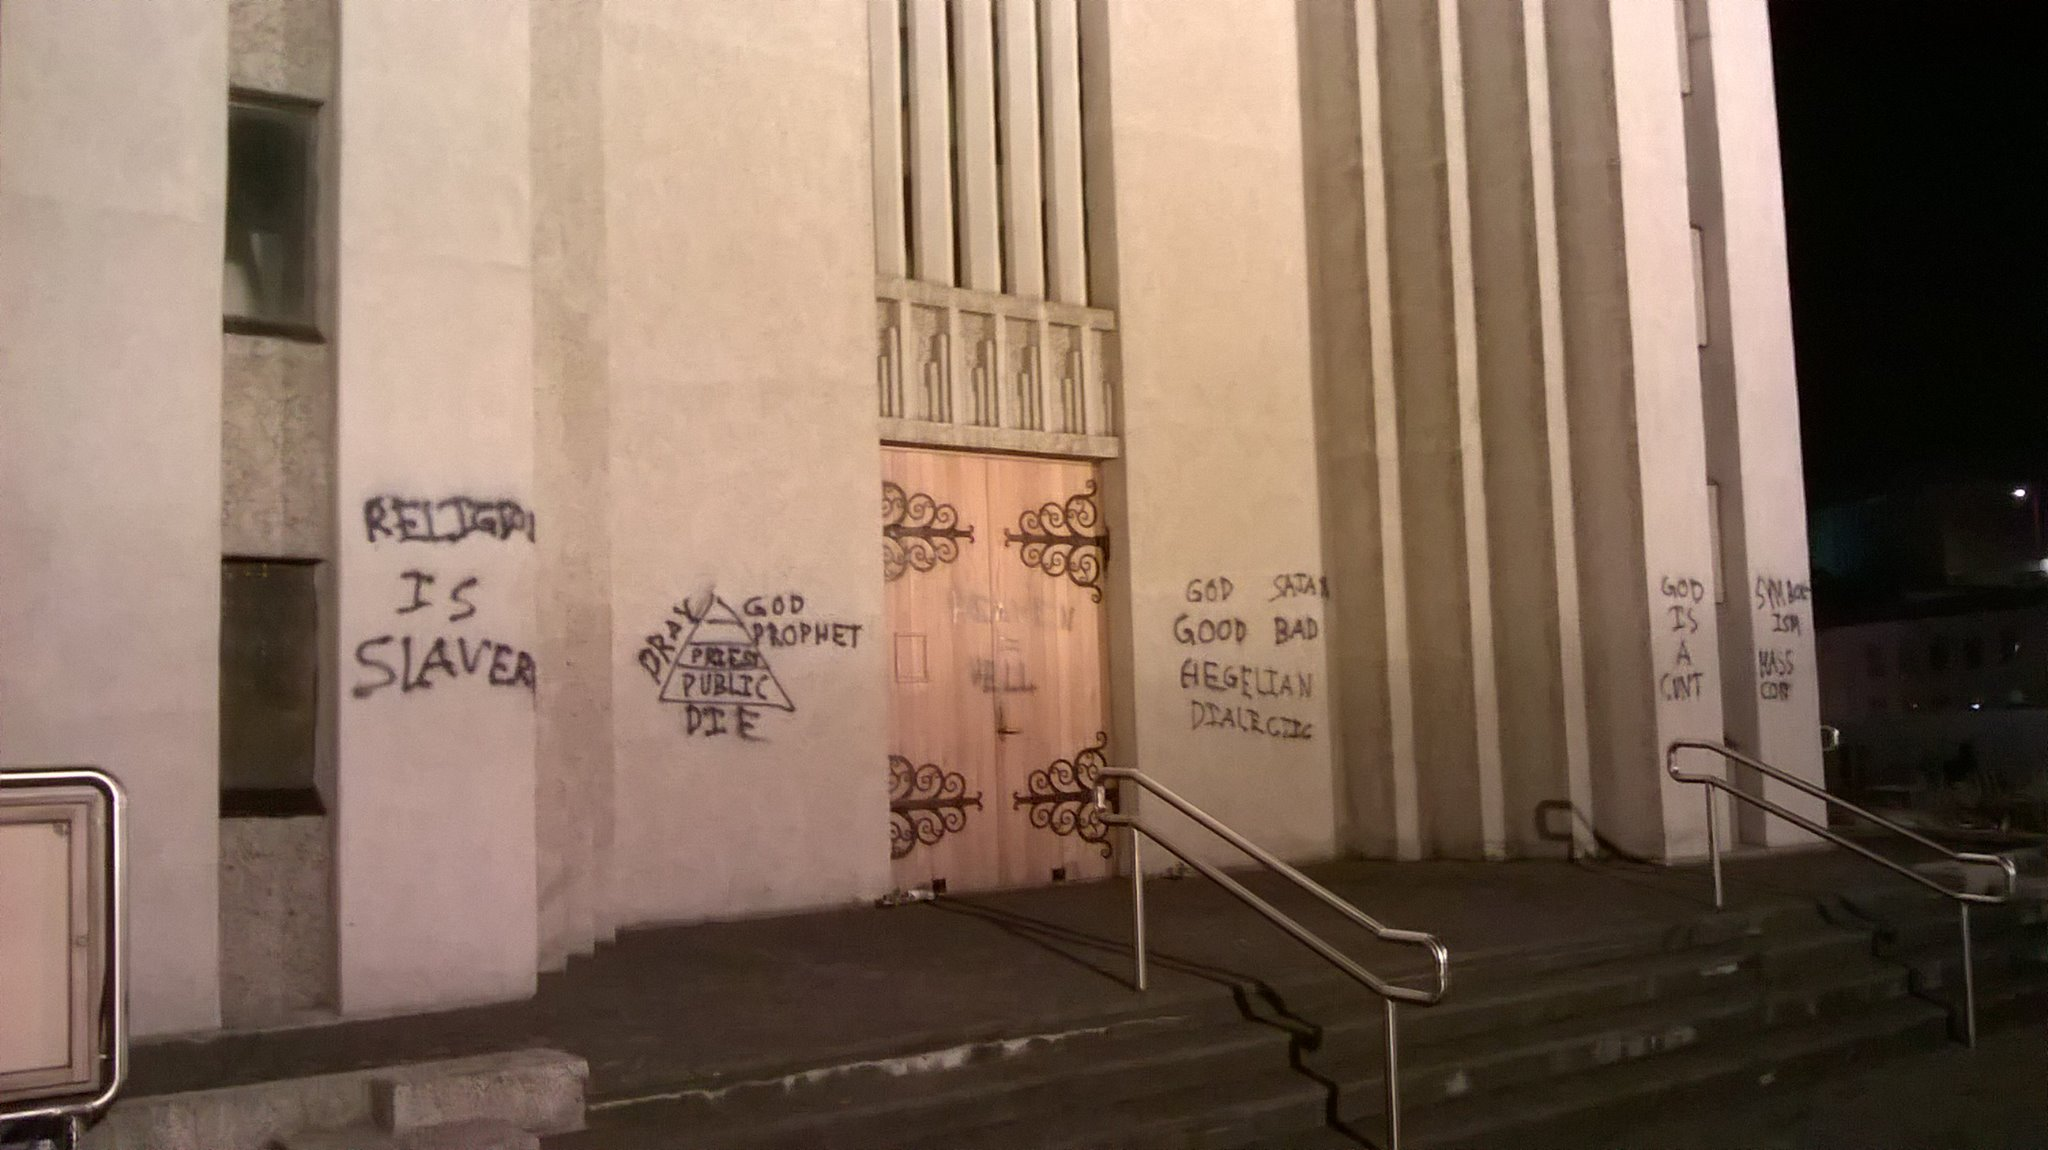 Man Who Vandalized Multiple Icelandic Churches Has Been Caught and Released